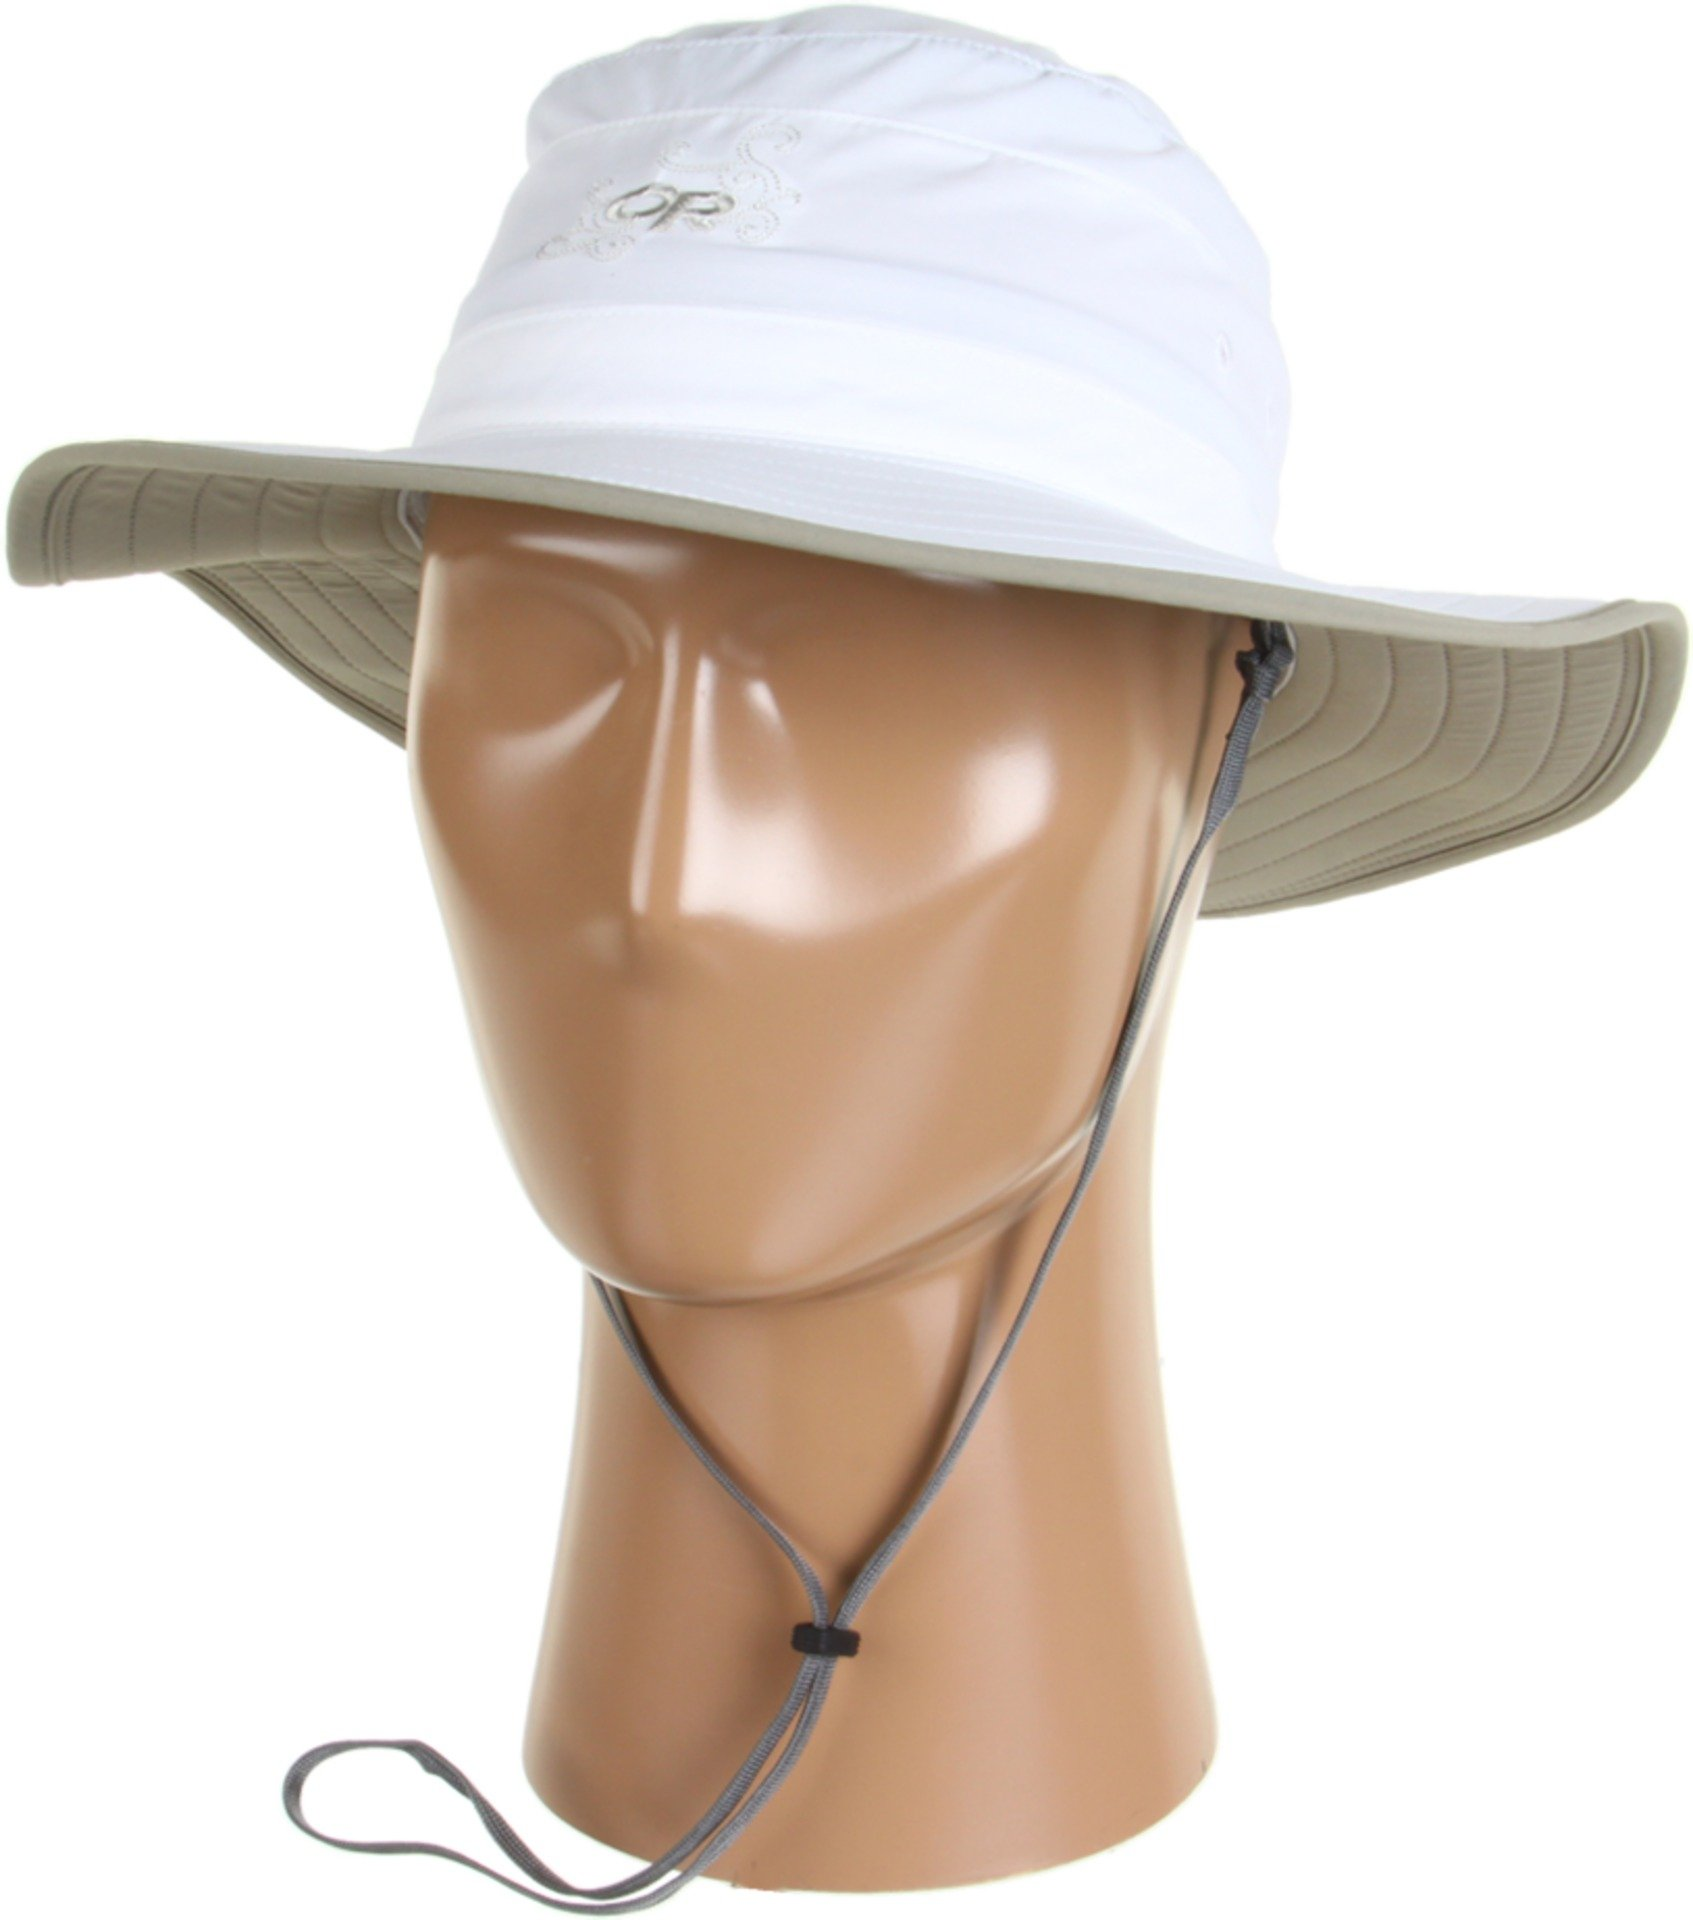 Outdoor Research Women's Solar Roller Sun Hat, White/Khaki, Medium by Outdoor Research